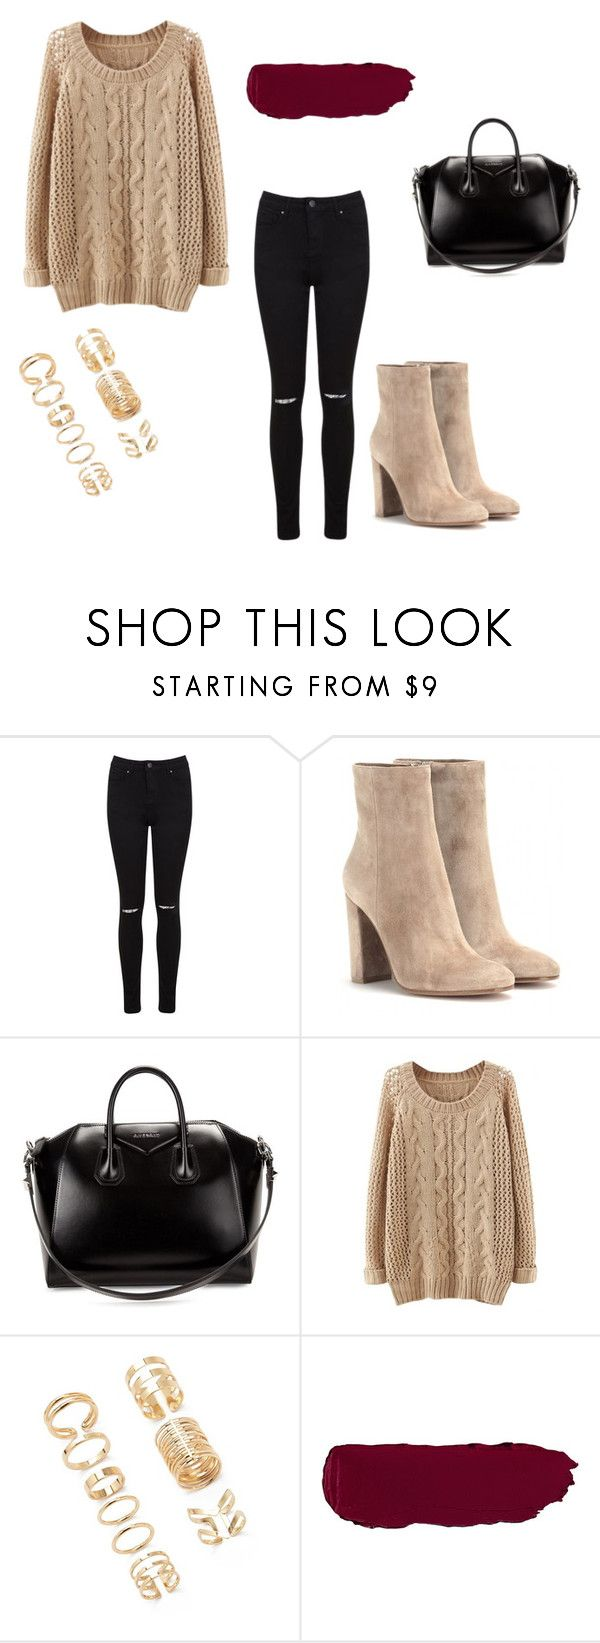 """""""what to wear this christmas"""" by missmikey on Polyvore featuring beauty, Miss Selfridge, Gianvito Rossi, Givenchy and Forever 21"""